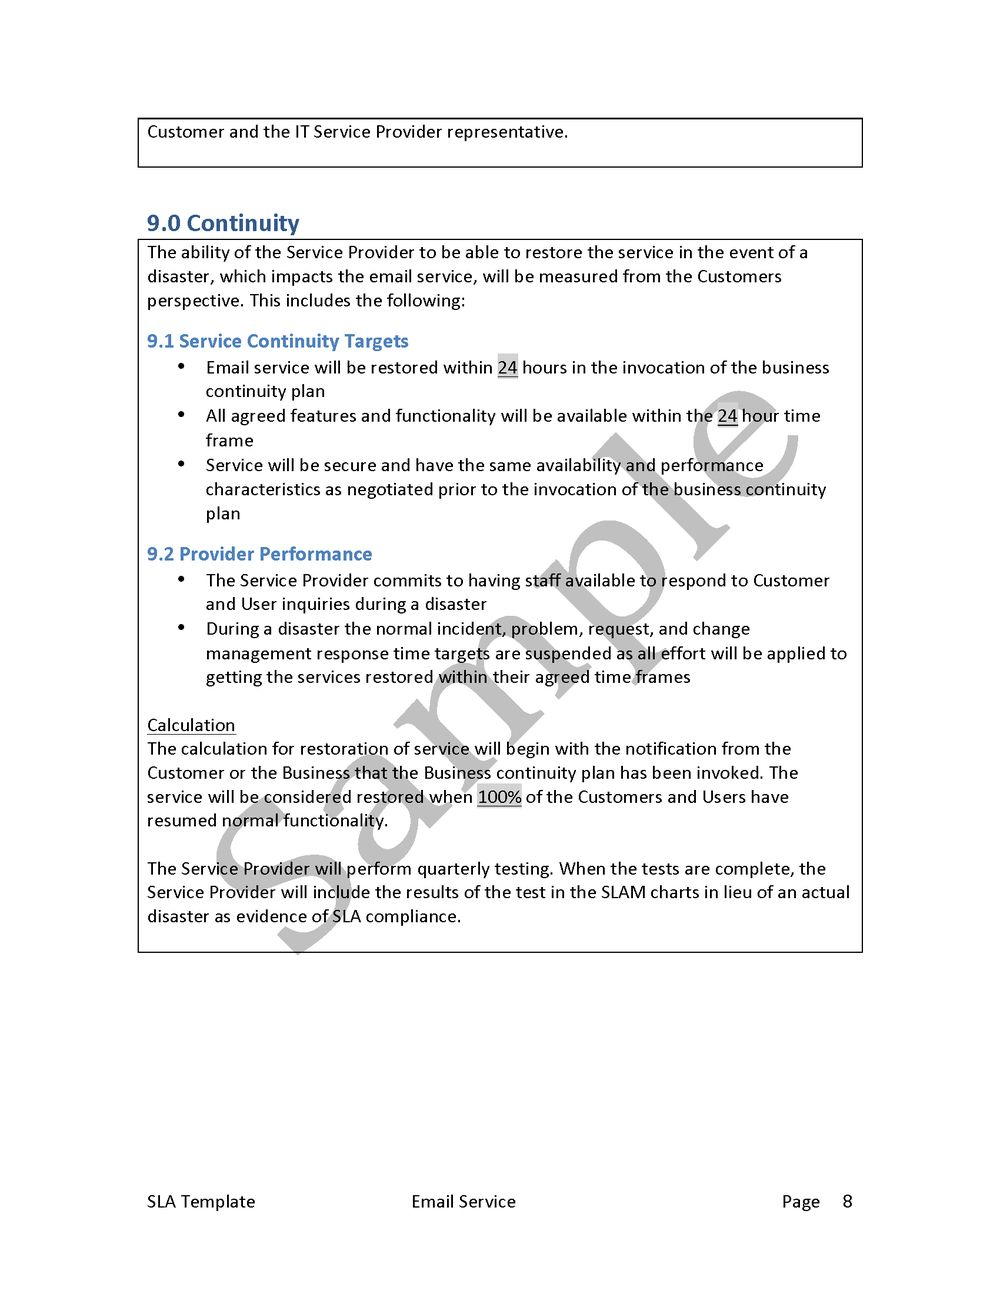 Service Level Agreement Template — Edge IT Training and Consulting Inc